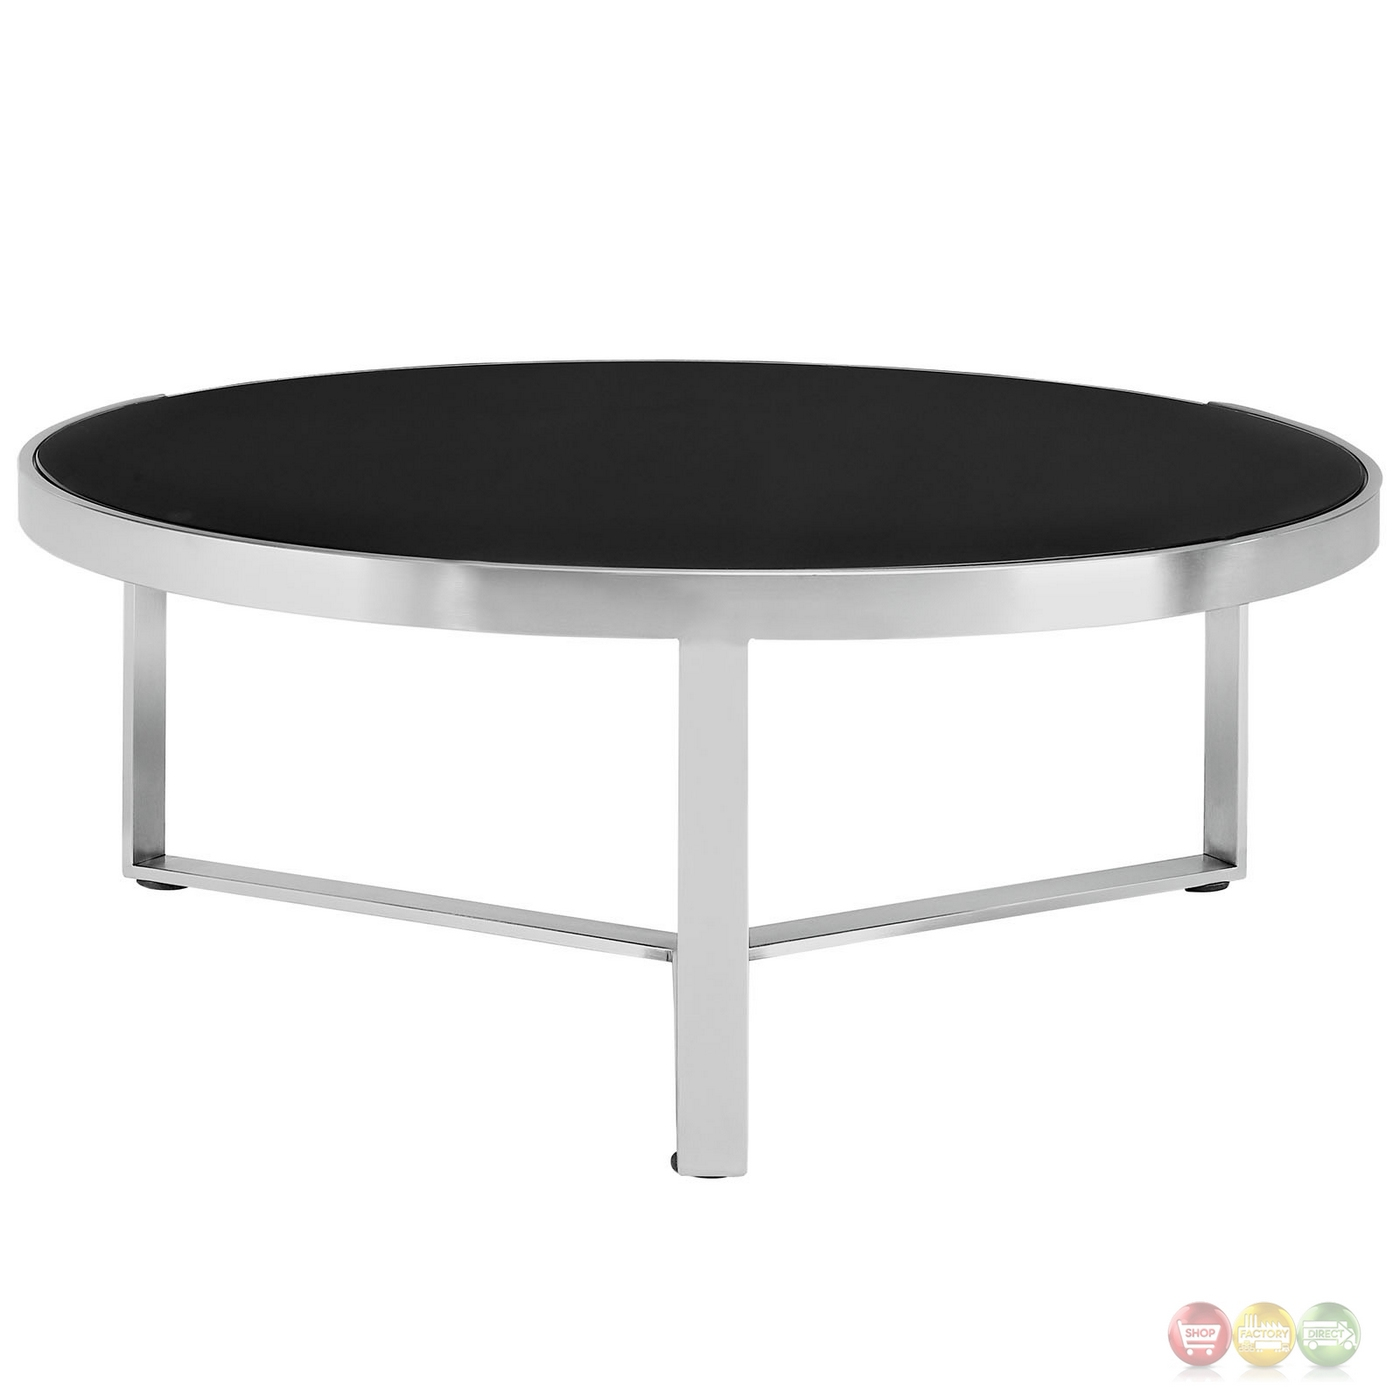 Disk Industrial Glass Top Round Coffee Table W Stainless